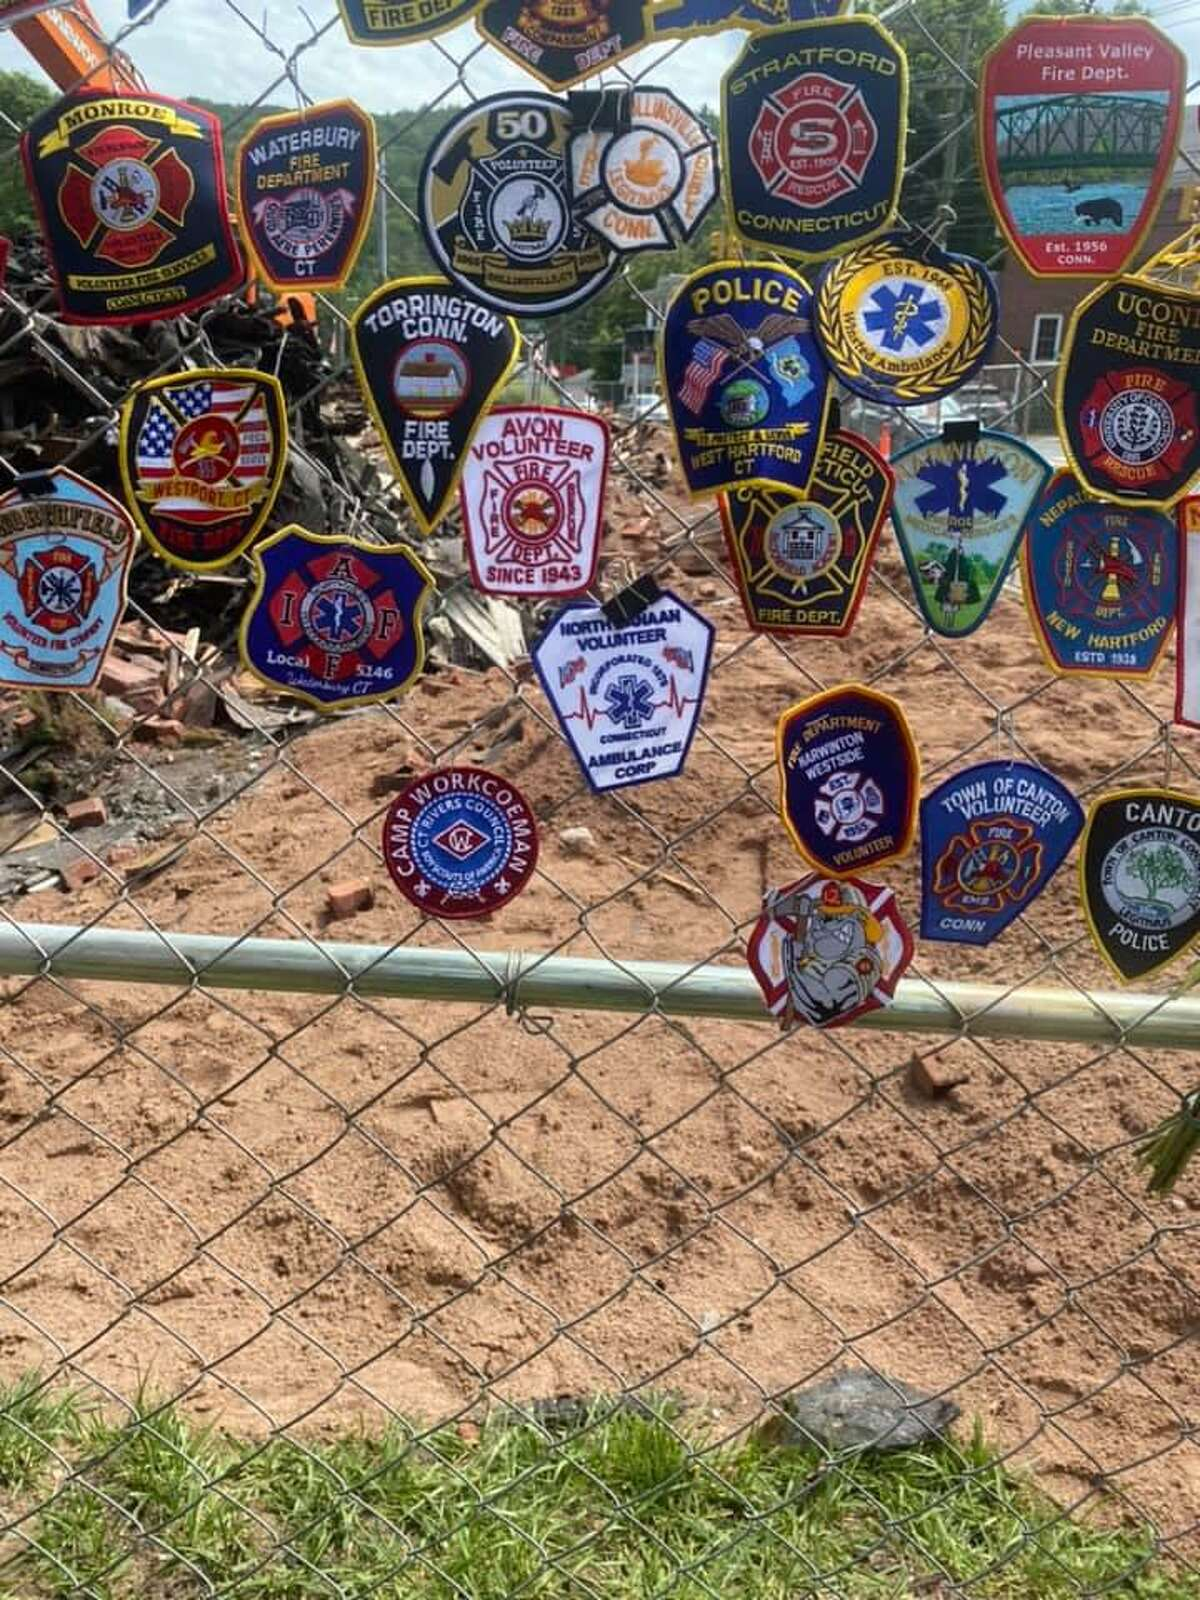 Firefighters put their company or department patches on a fence outside the site of the New Hartford House to show their support for the Burlington Fire Company, whose member Colin McFadden died after fighting the Aug. 10 blaze.